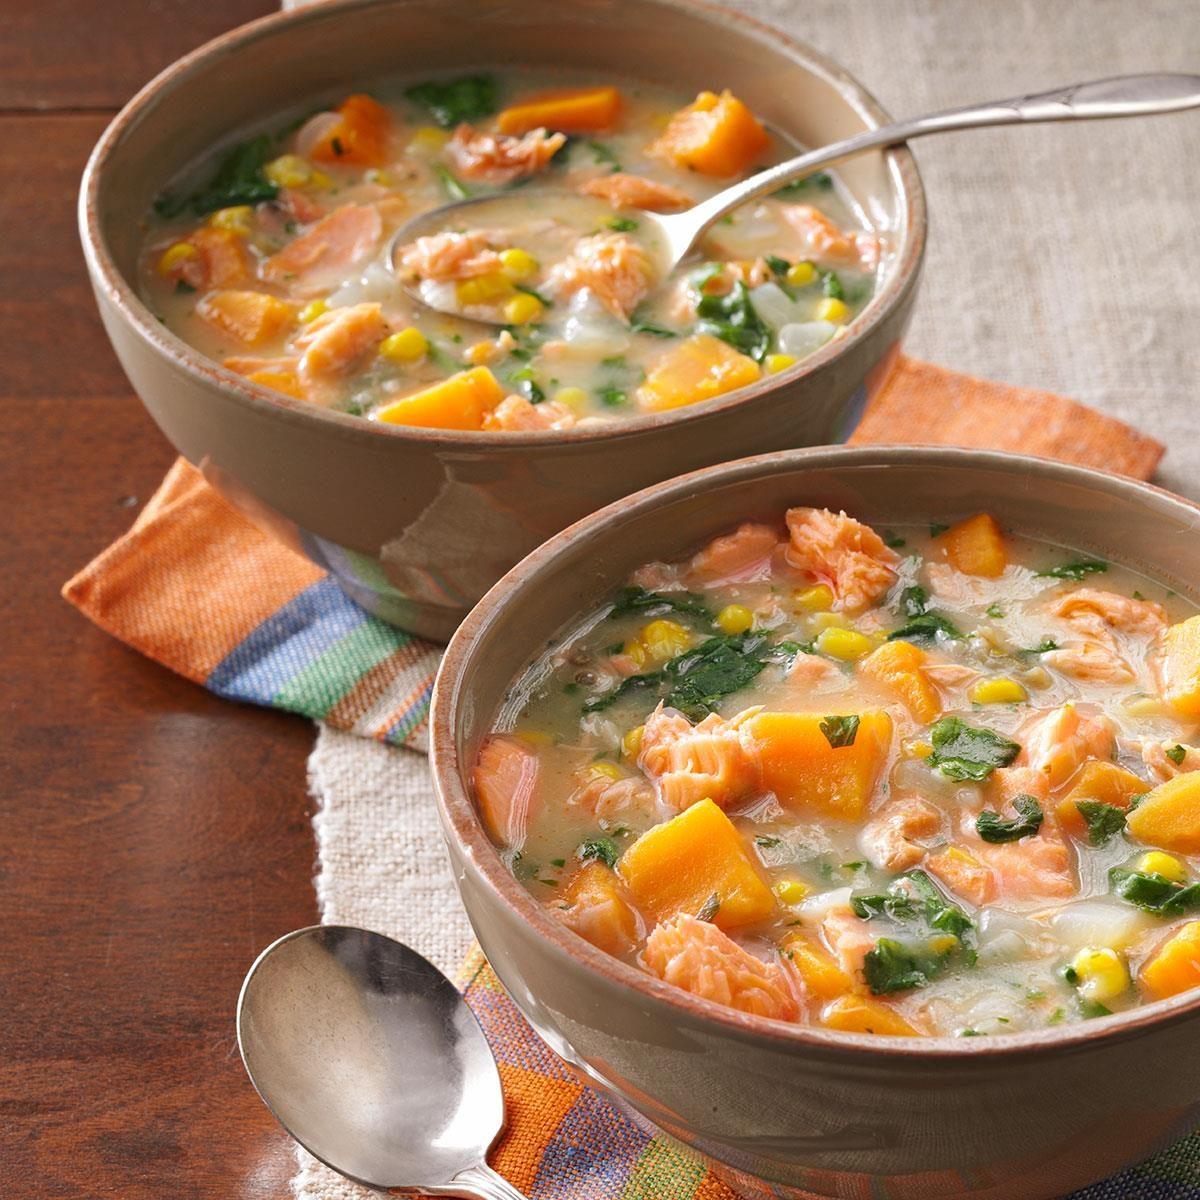 Day 7 Lunch: Veggie Salmon Chowder